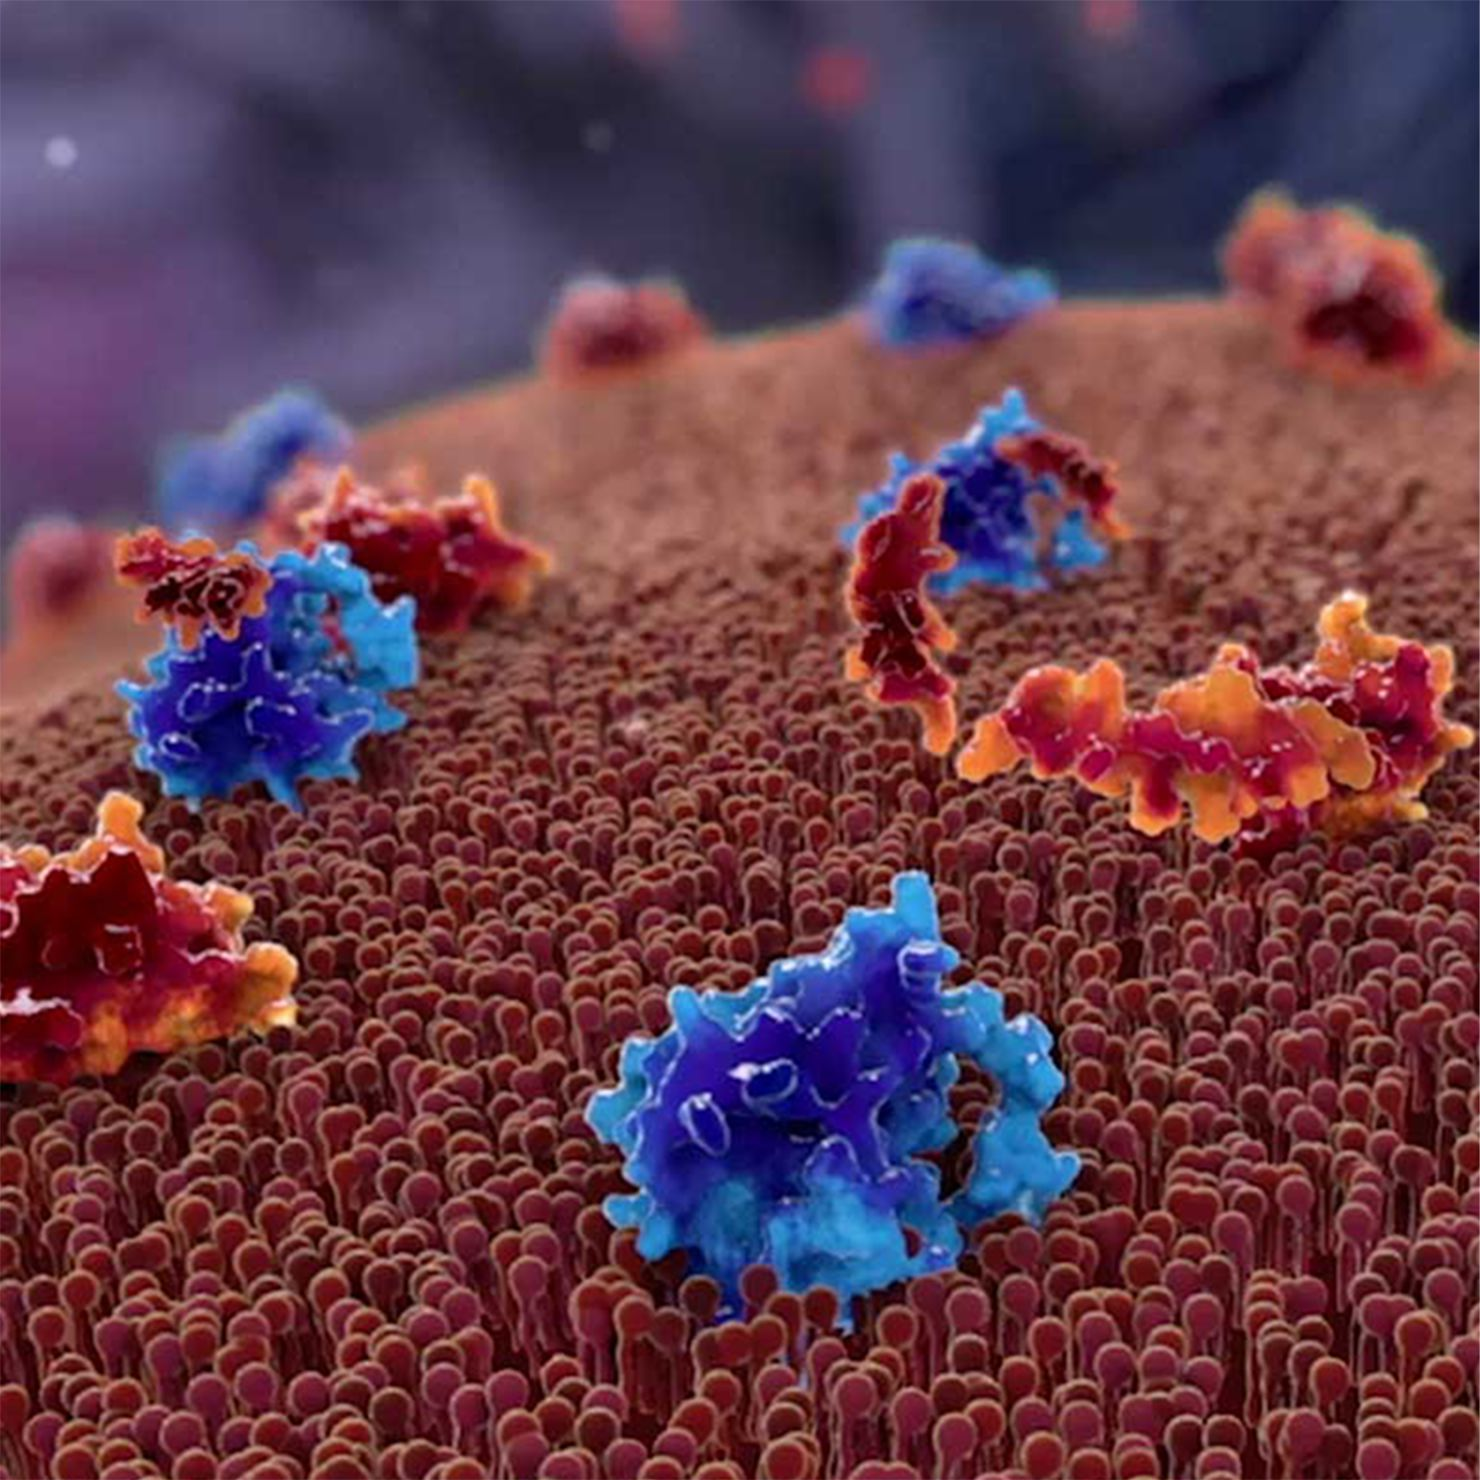 Orange and blue cells close up.